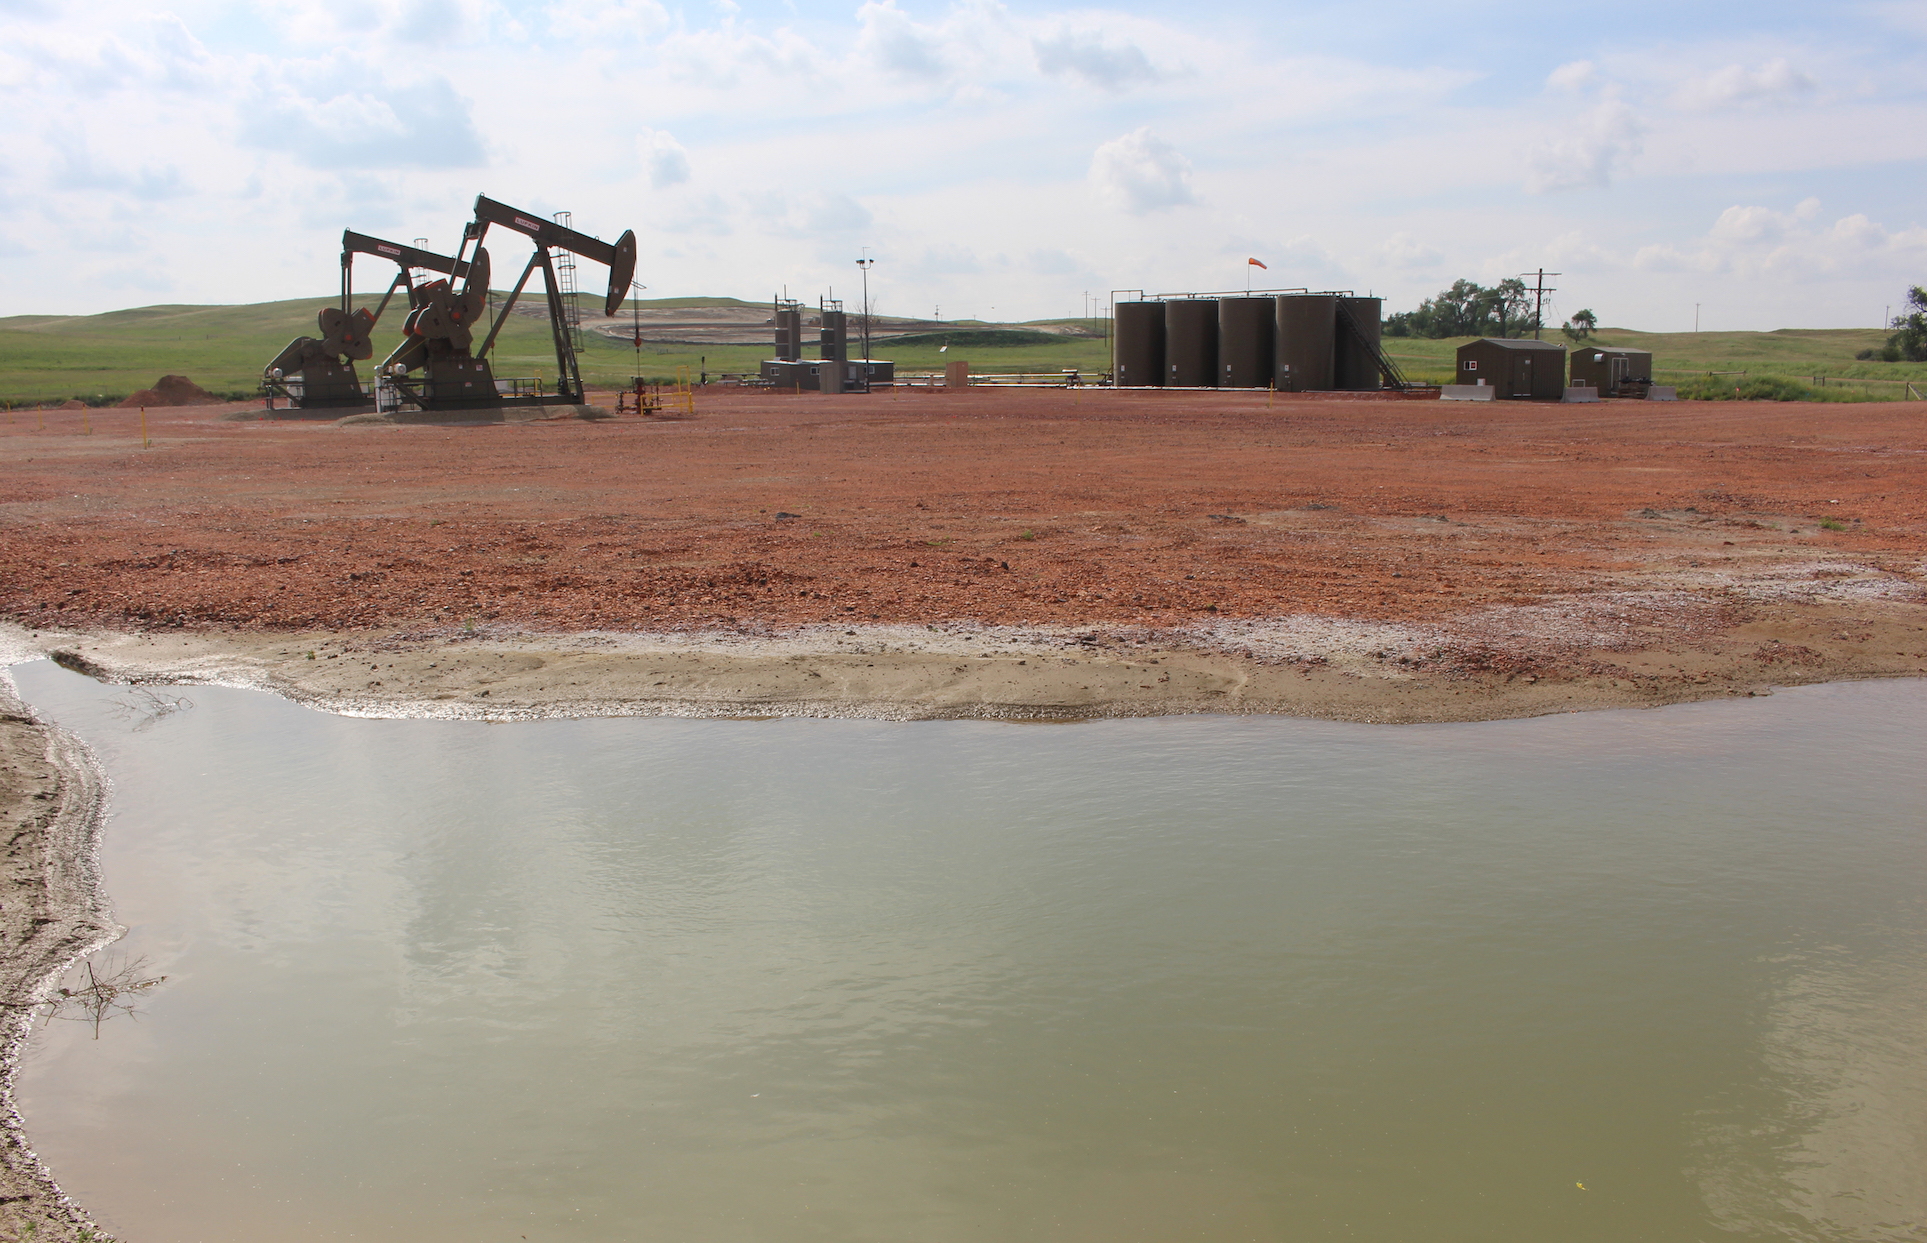 A new study has found that the volume of water used for hydraulic fracturing jumped by 770 percent between 2011 and 2016 in the US.